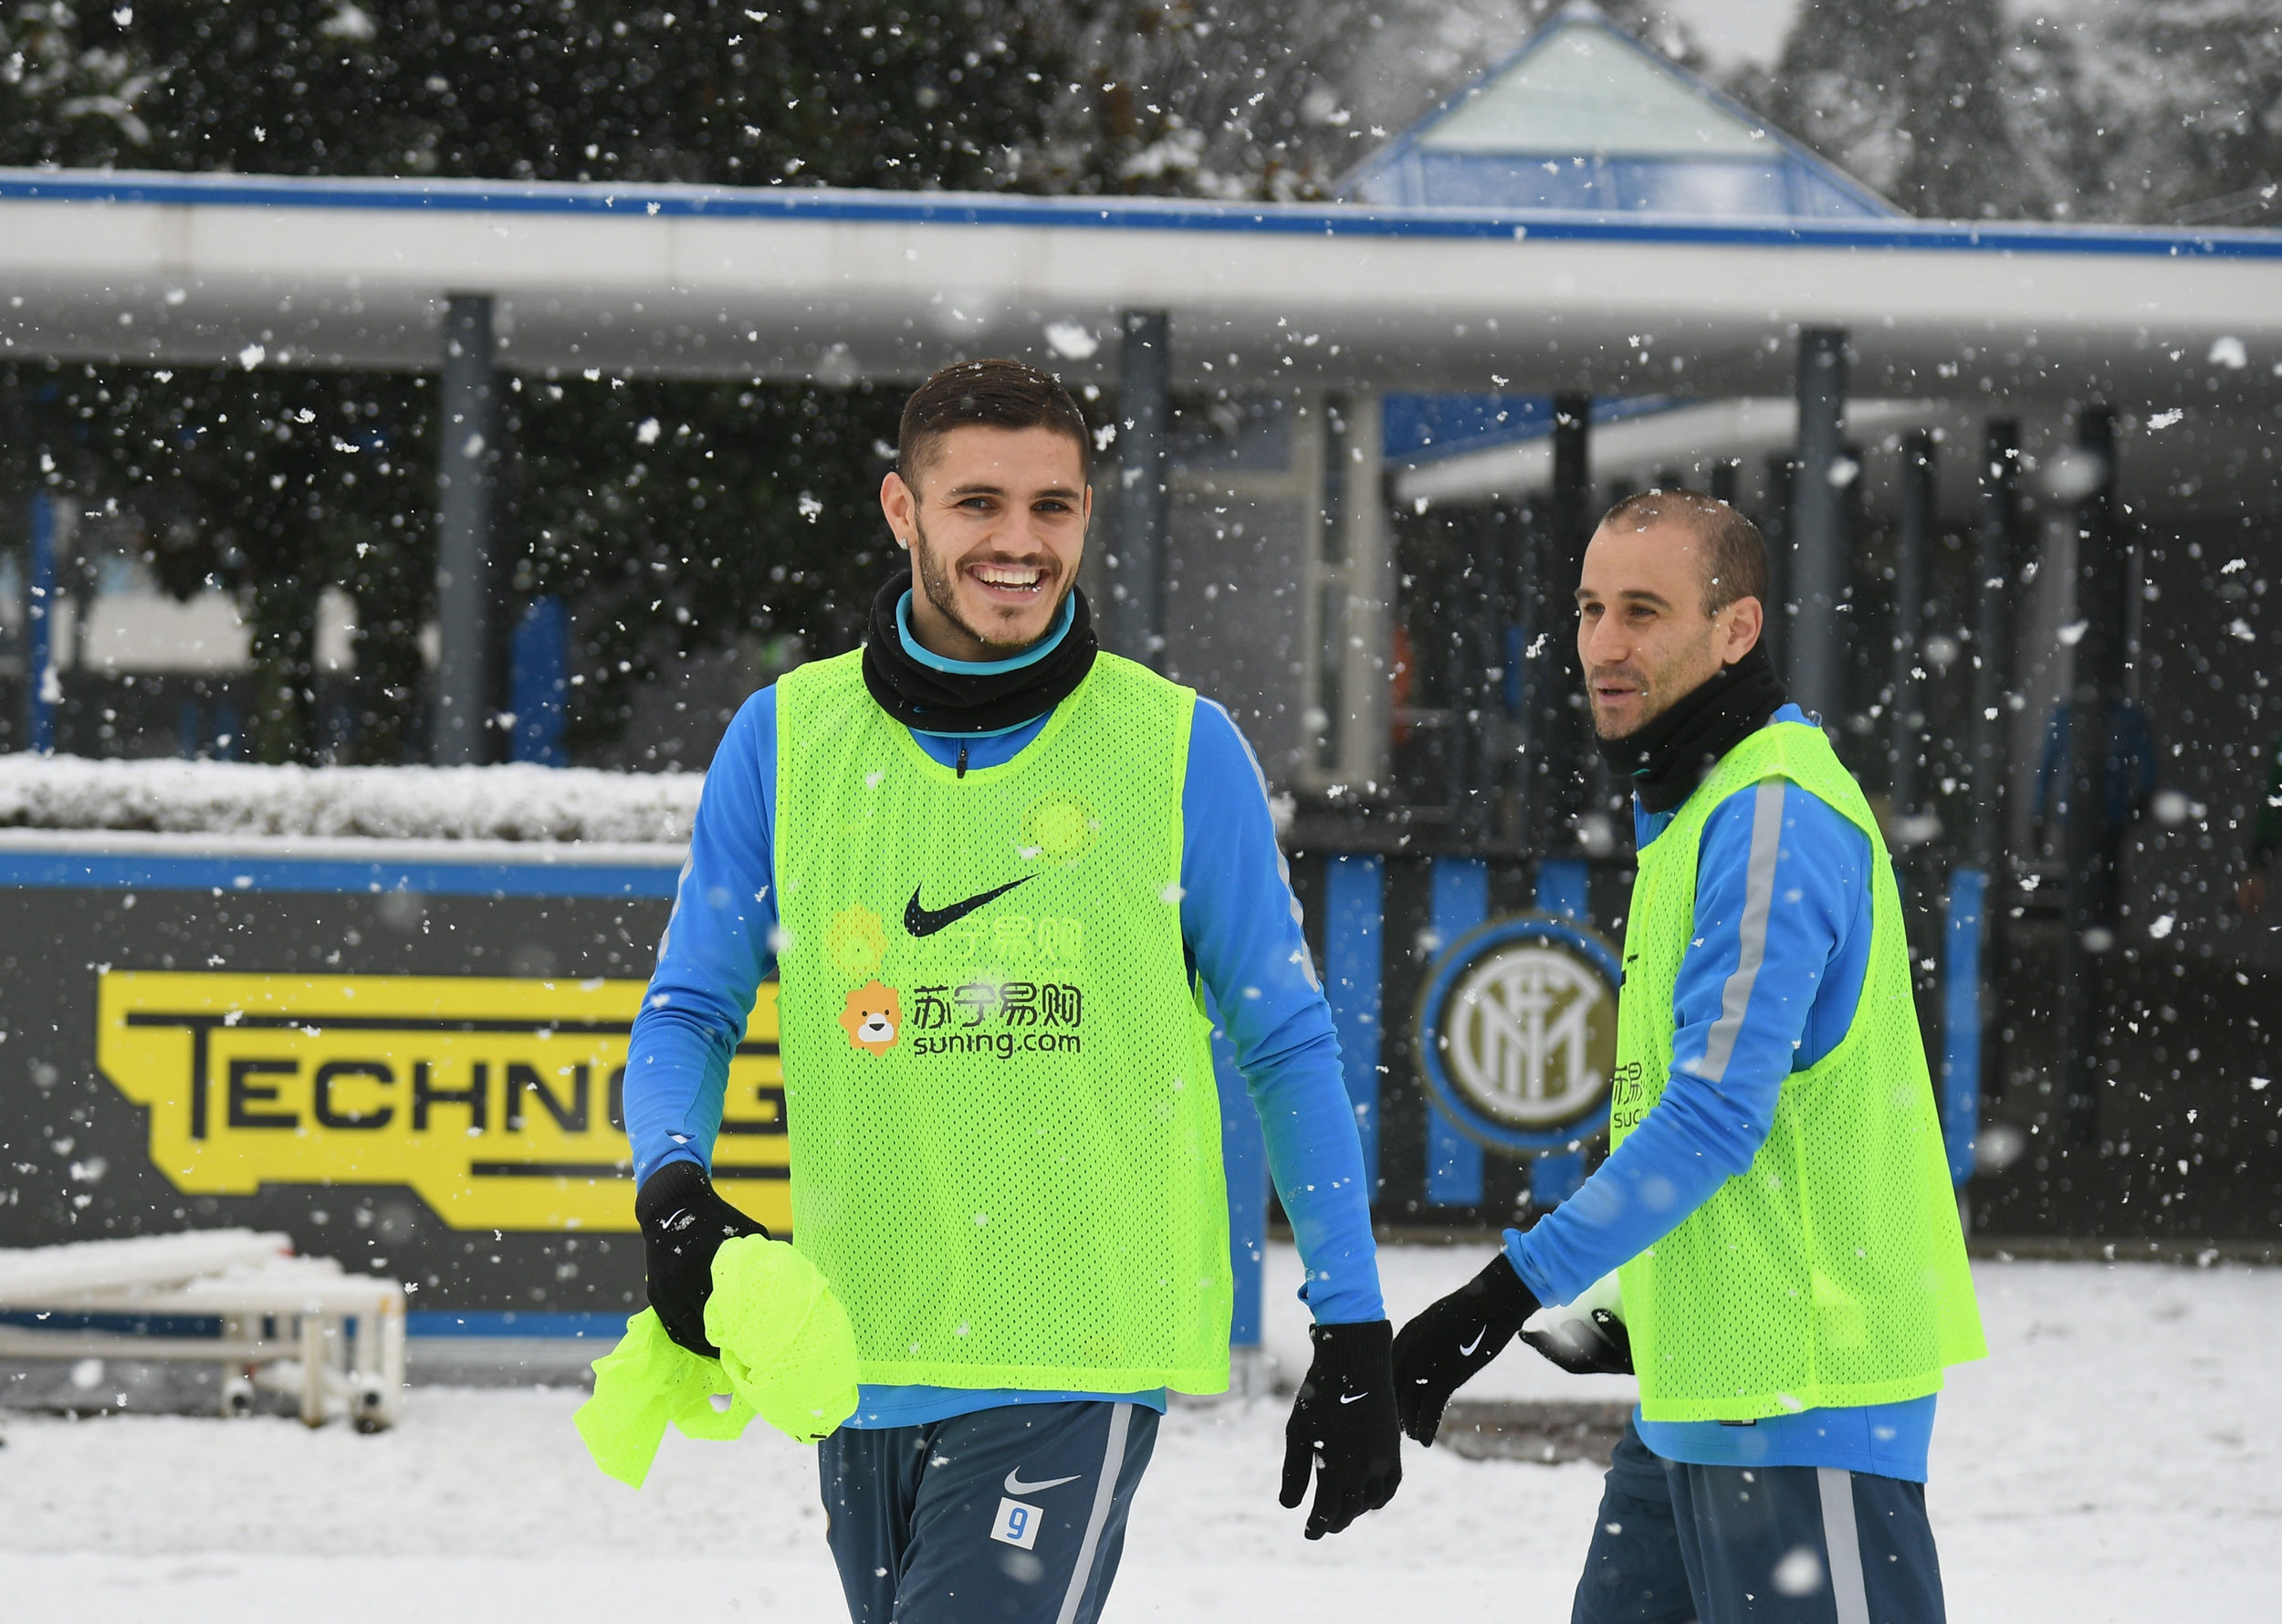 Snowy session in Appiano ahead of Empoli